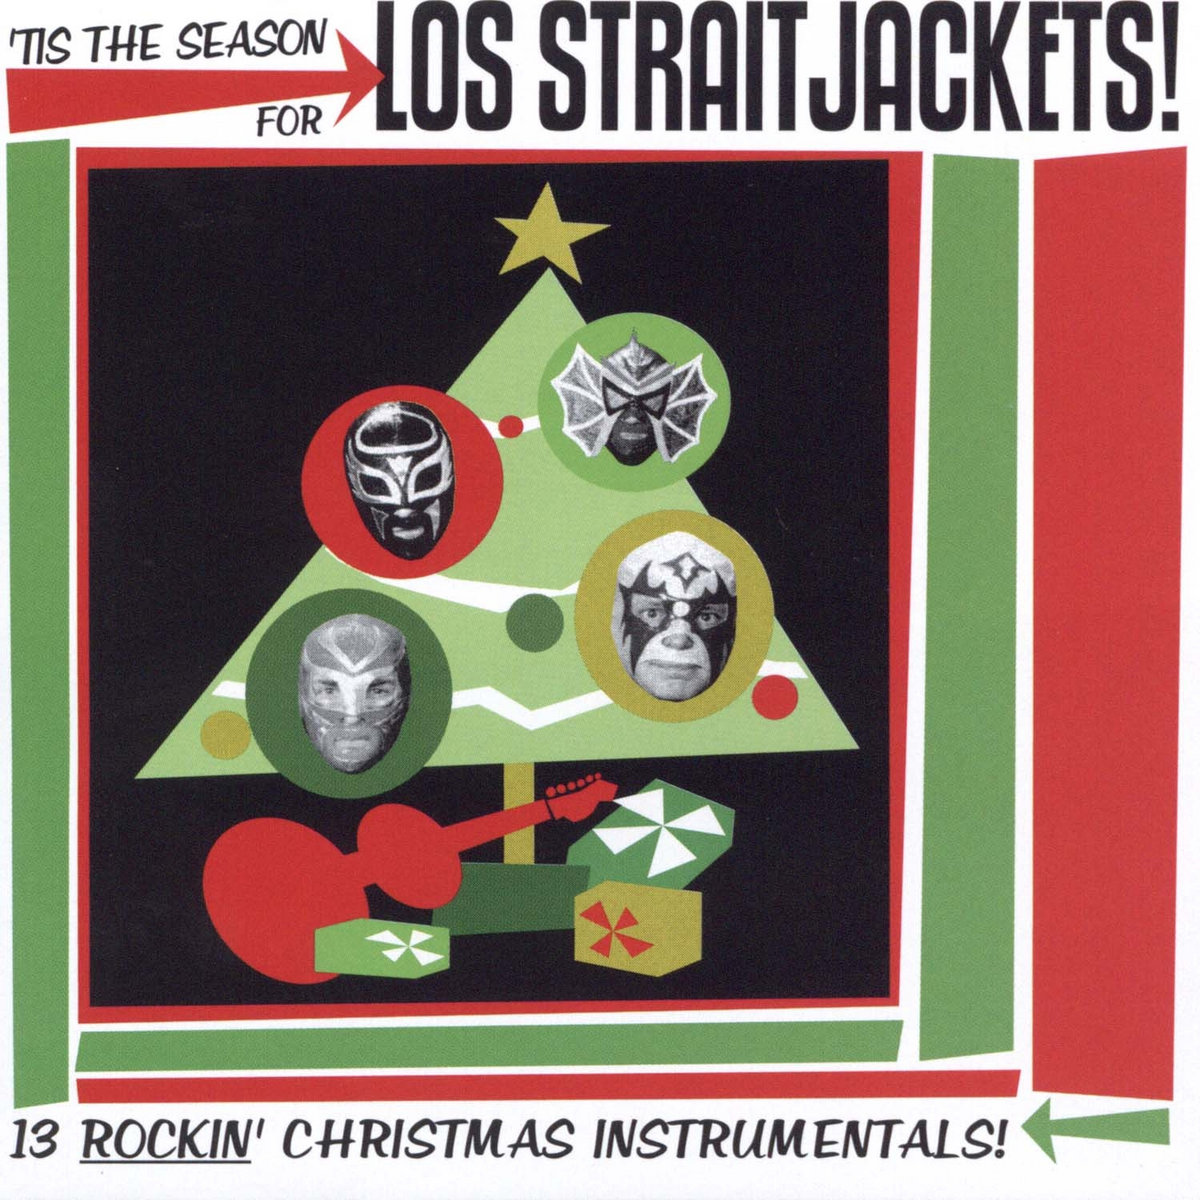 Rudolph The Red Nosed Reindeer Los Straitjackets